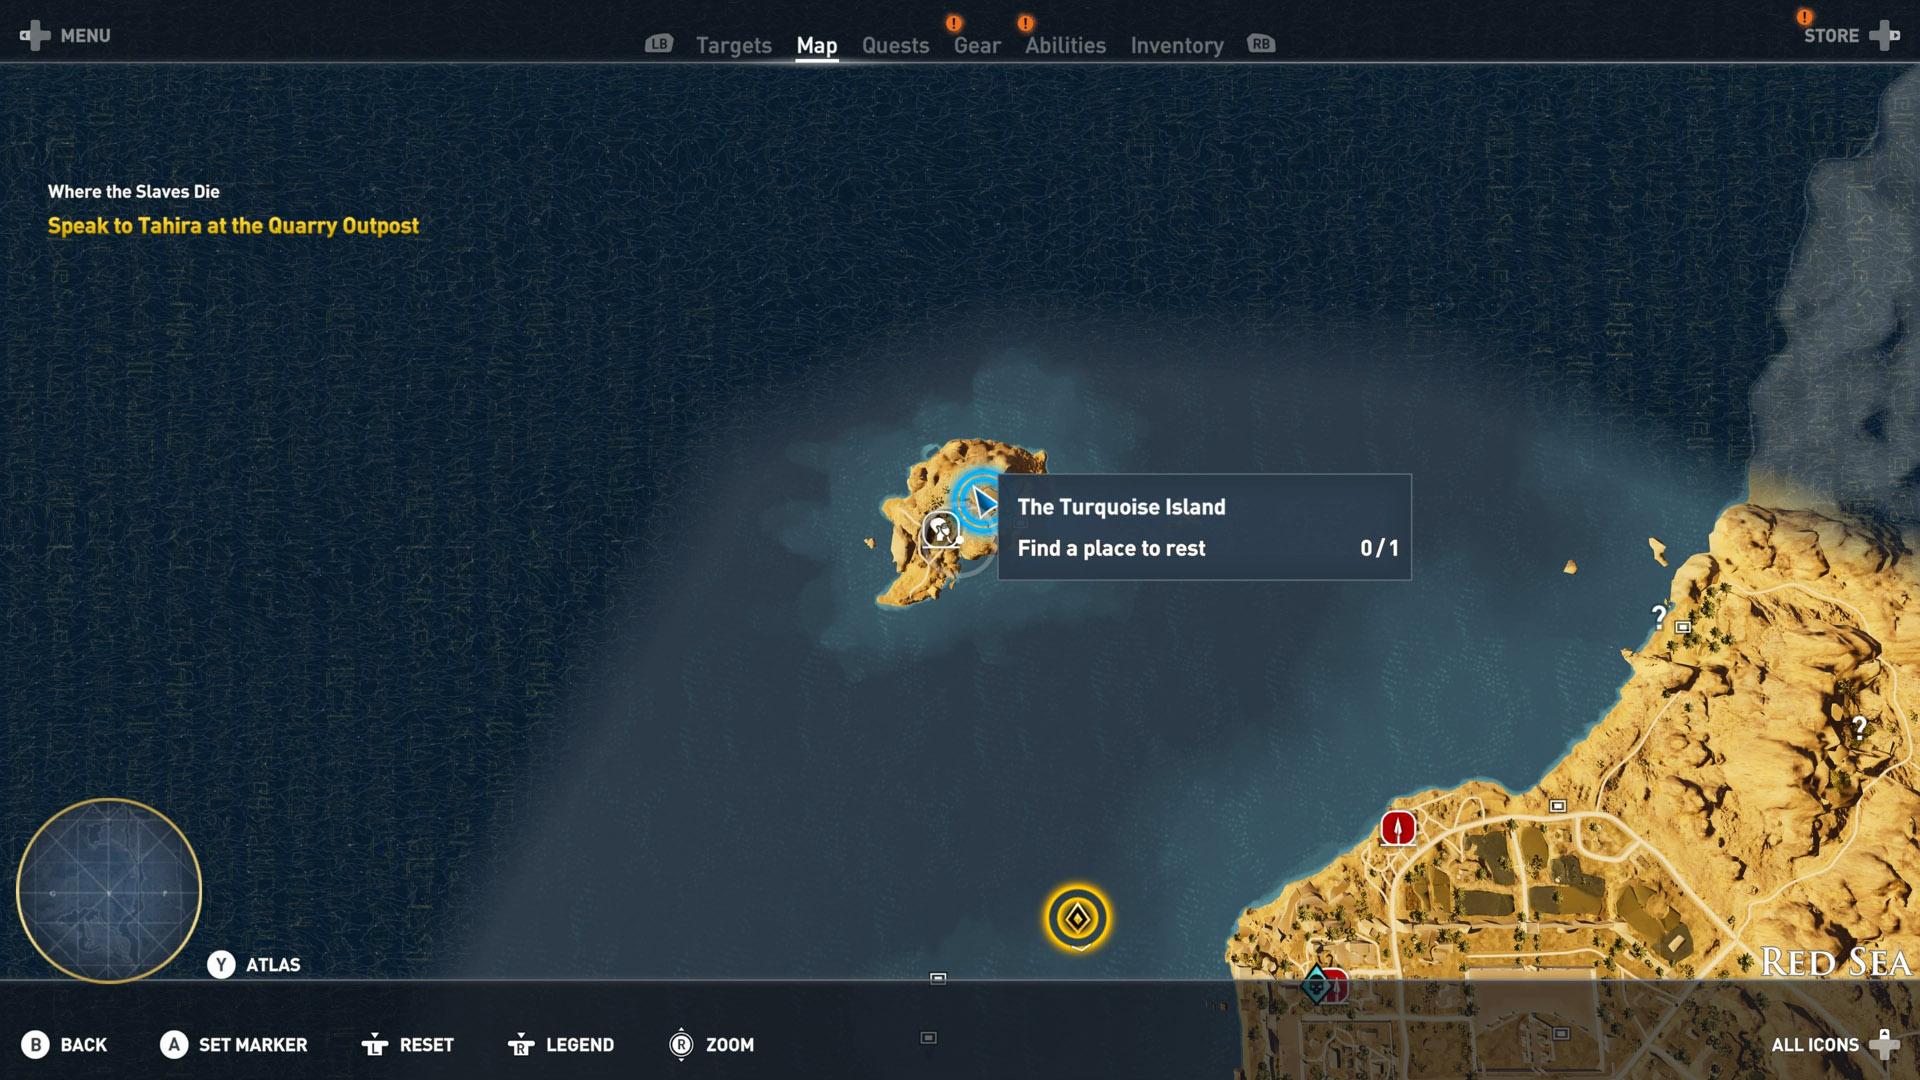 Assassins creed origins all hermit locations shacknews one of the first hermit locations you can found is out in the red sea in the north this little island has a few treasure to find gumiabroncs Gallery